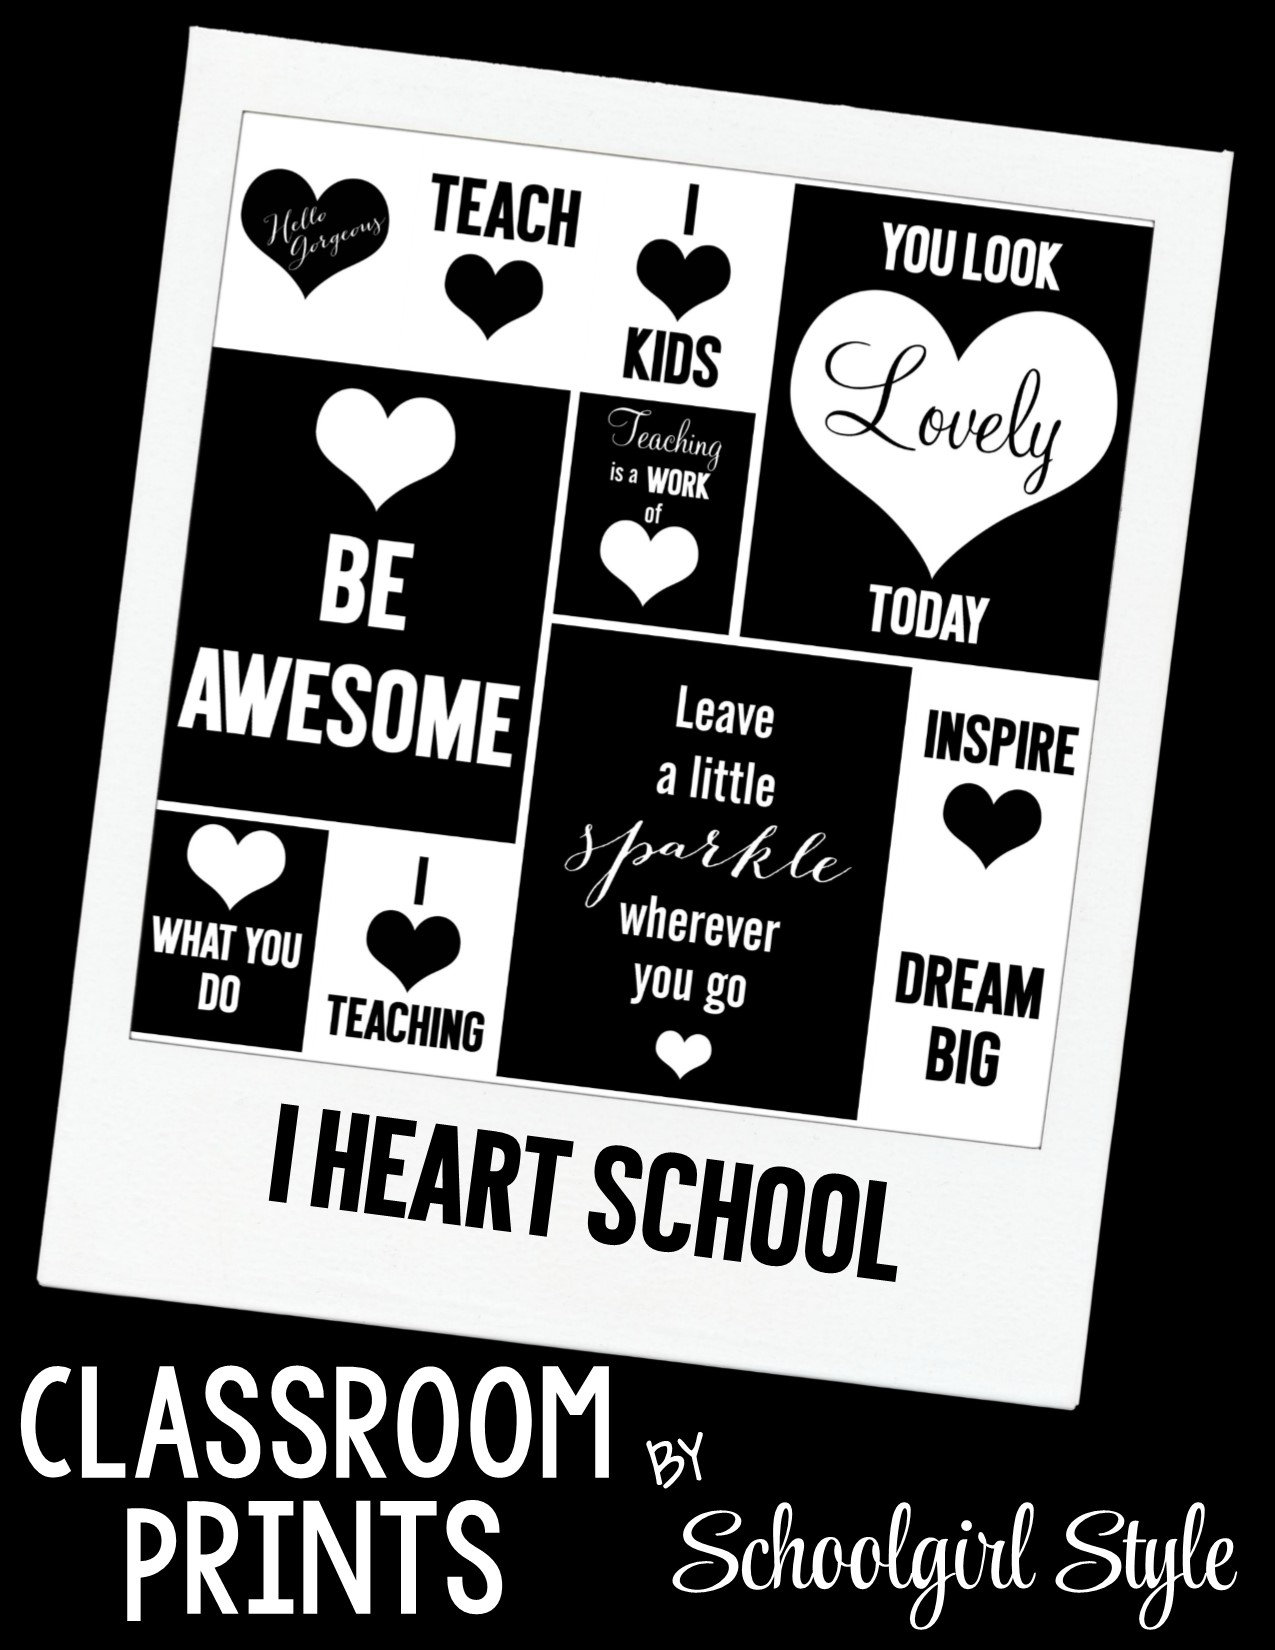 Classroom Prints by Schoolgirl Style